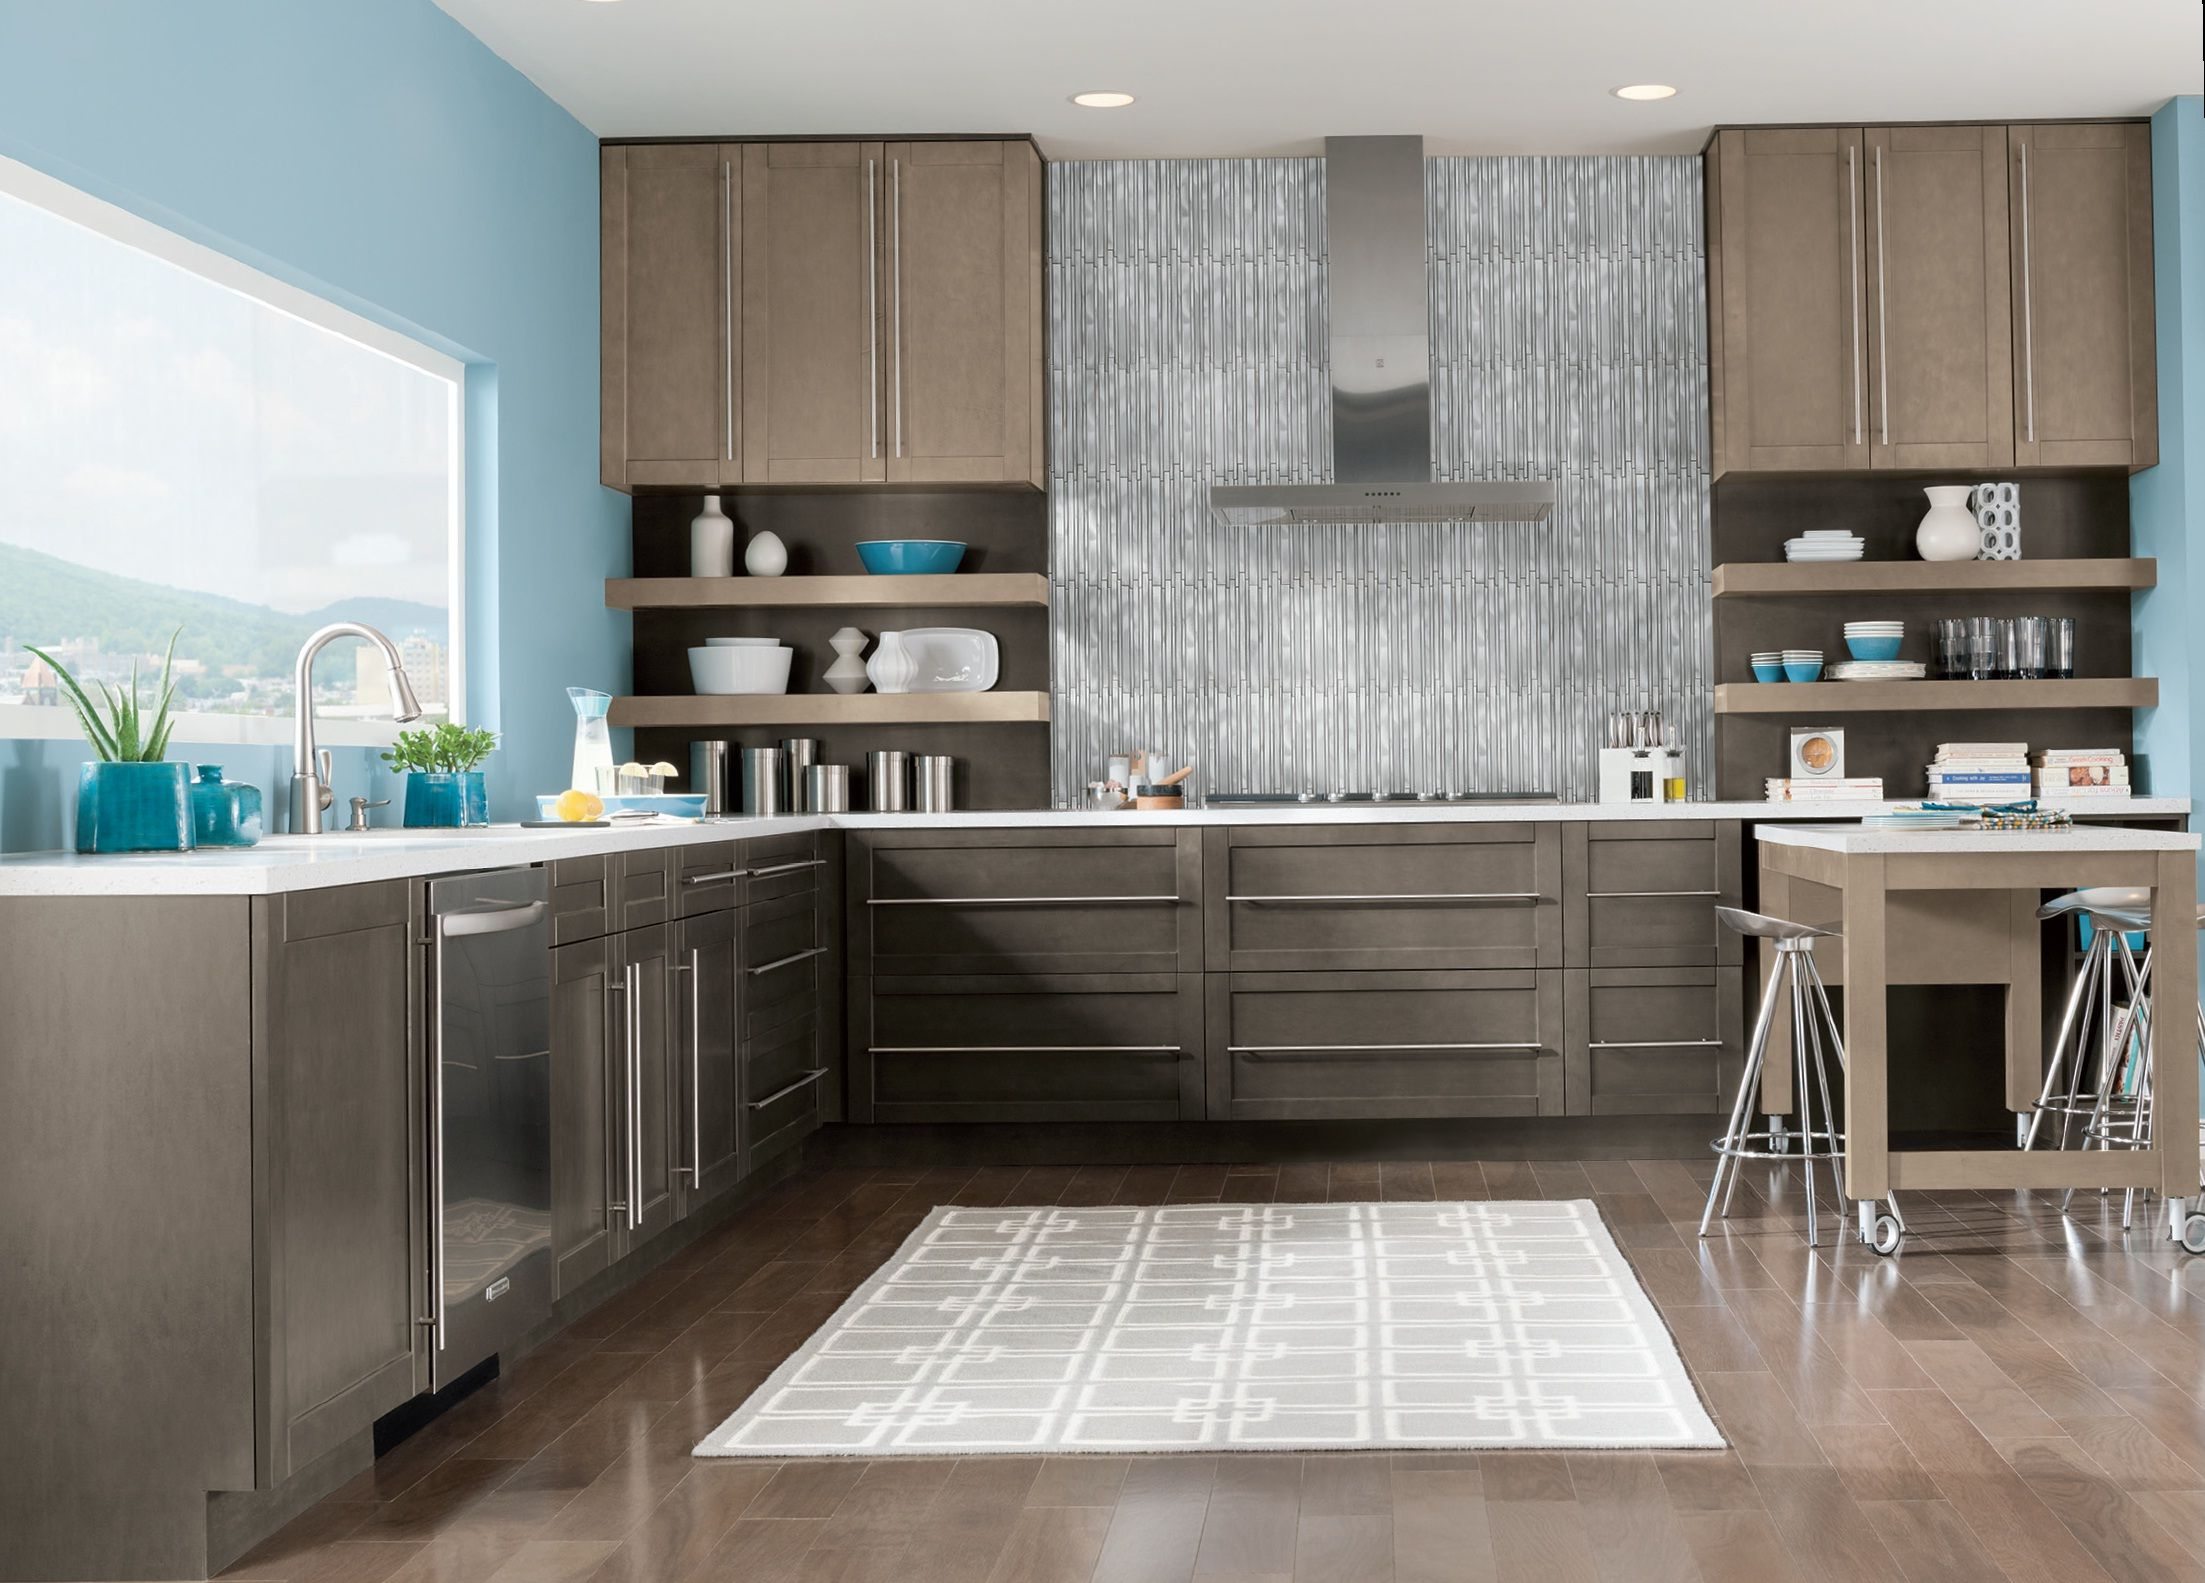 Lowes espresso kitchen cabinets - Espresso Cabinets With A Unique V Groove Shaker Style Door With A Recessed Centre Panel